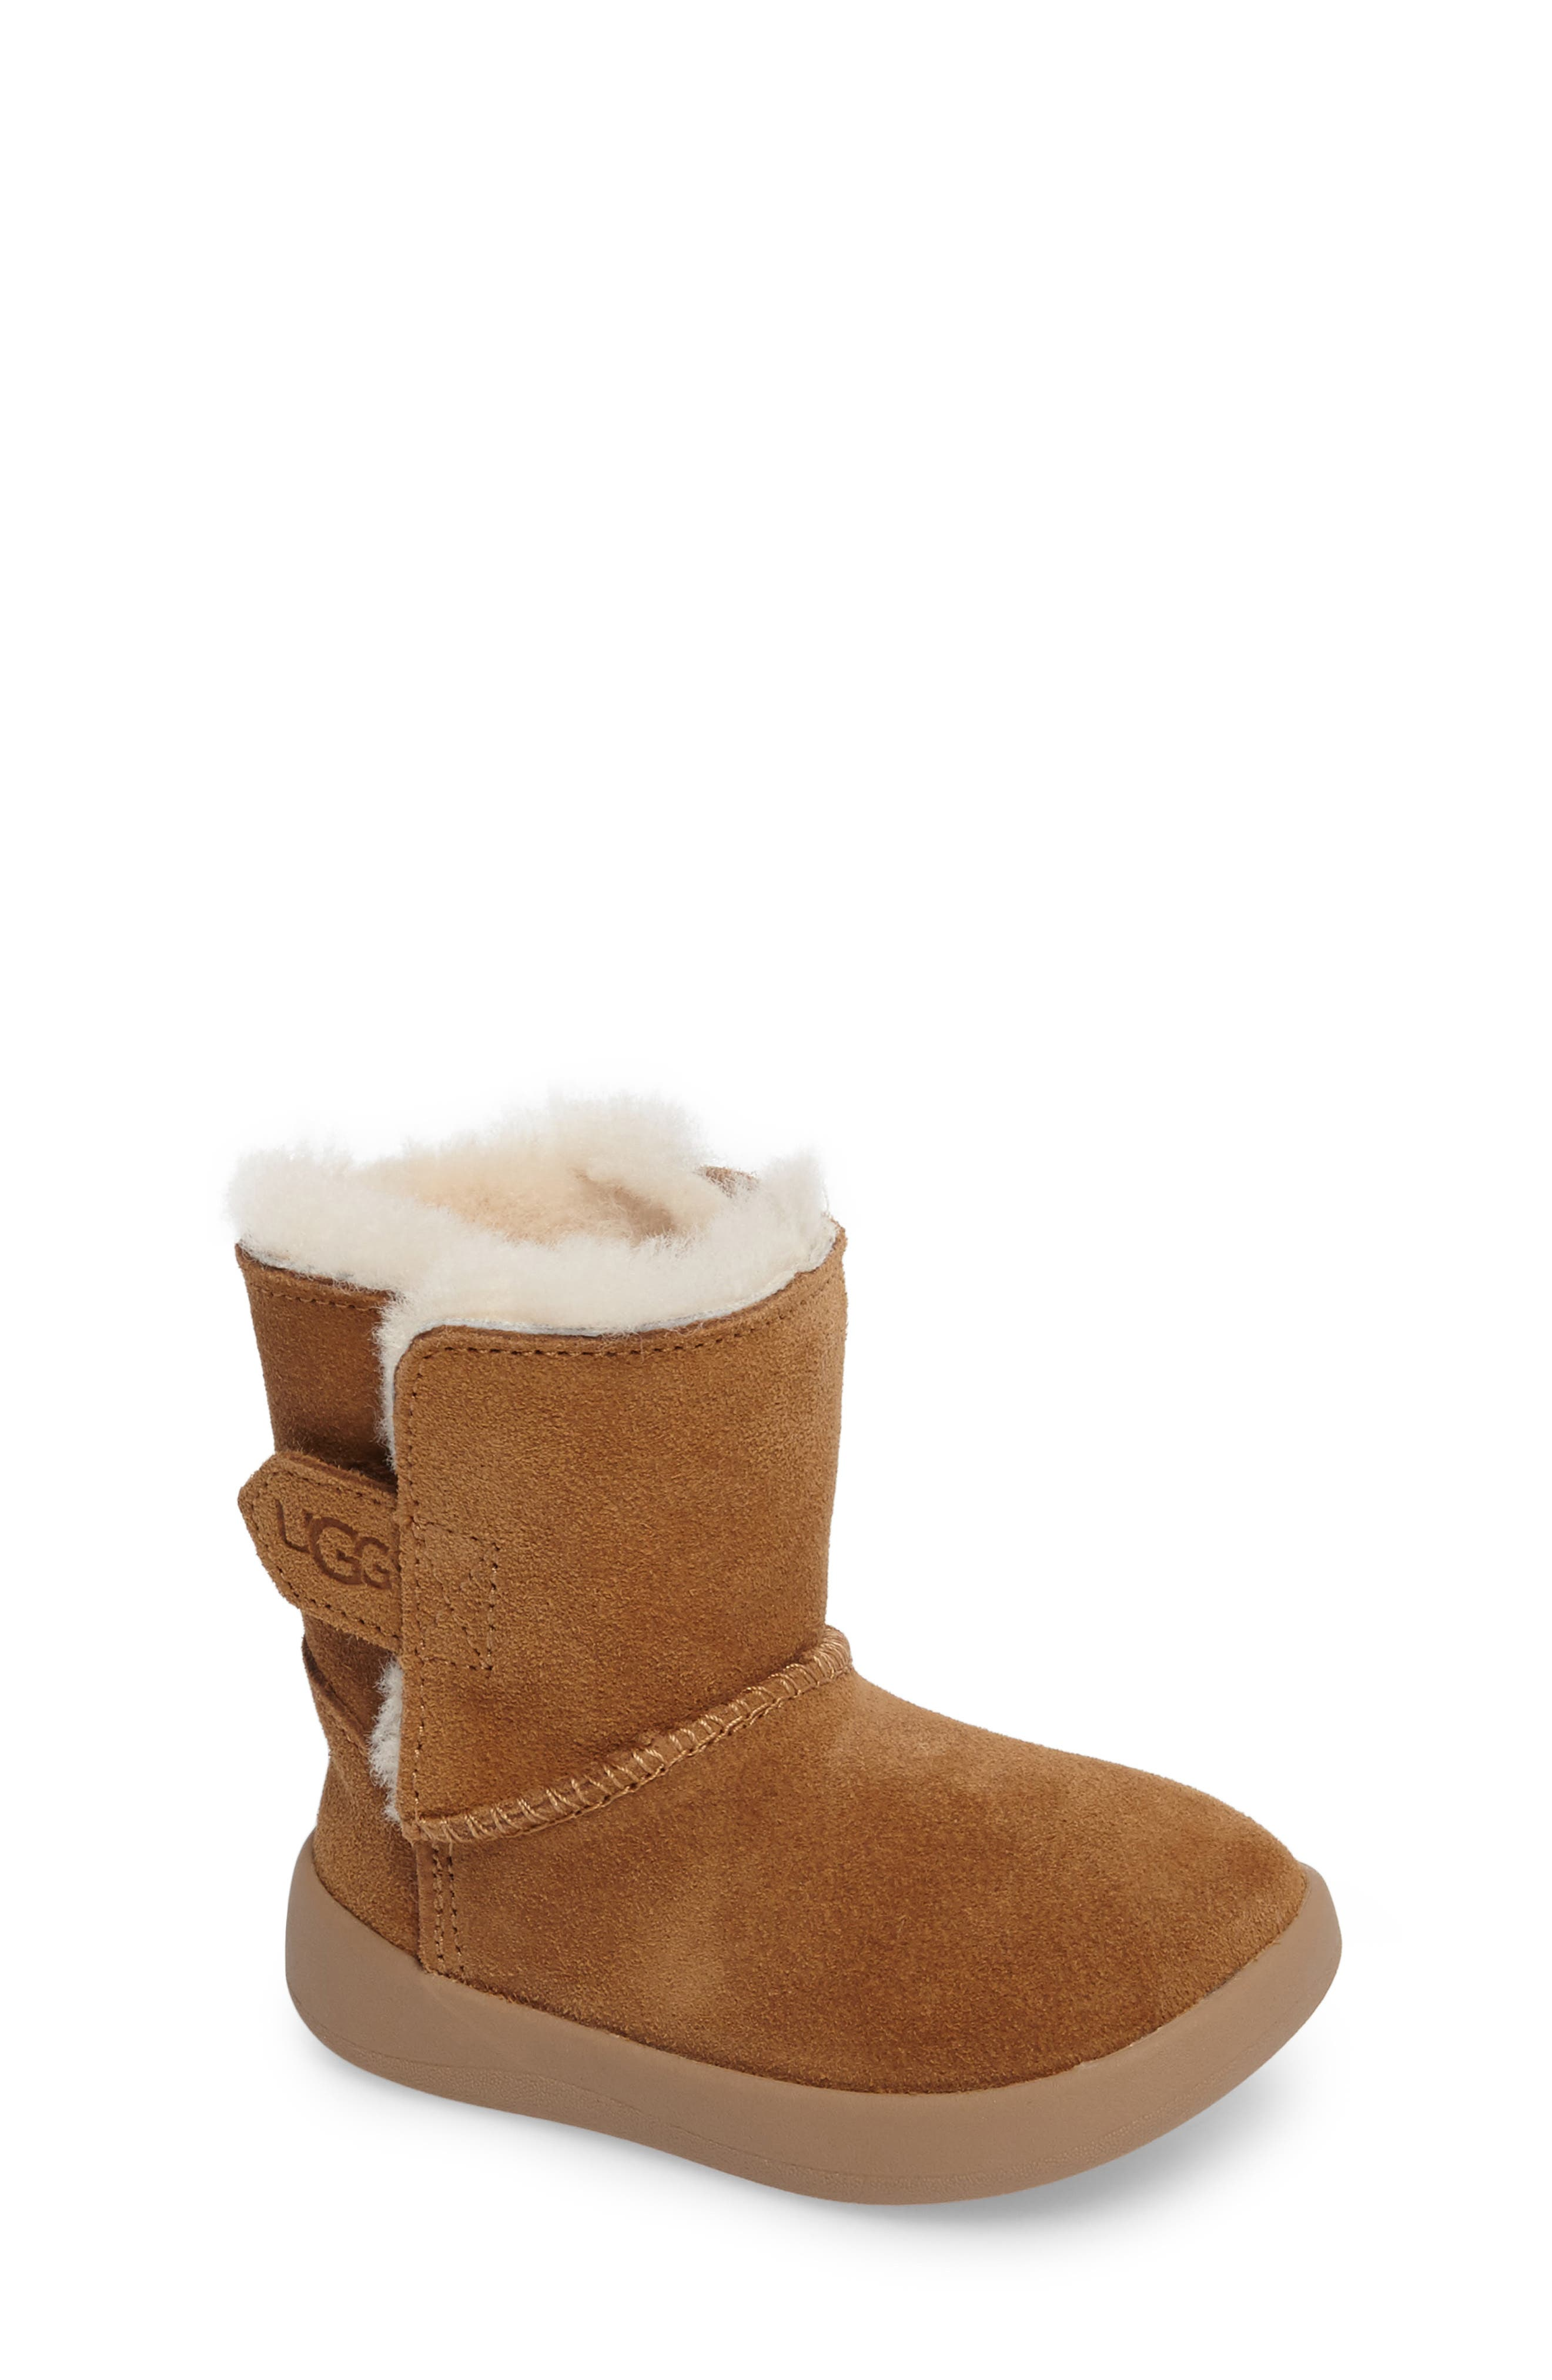 Keelan Genuine Shearling Baby Bootie,                         Main,                         color, Chestnut Brown